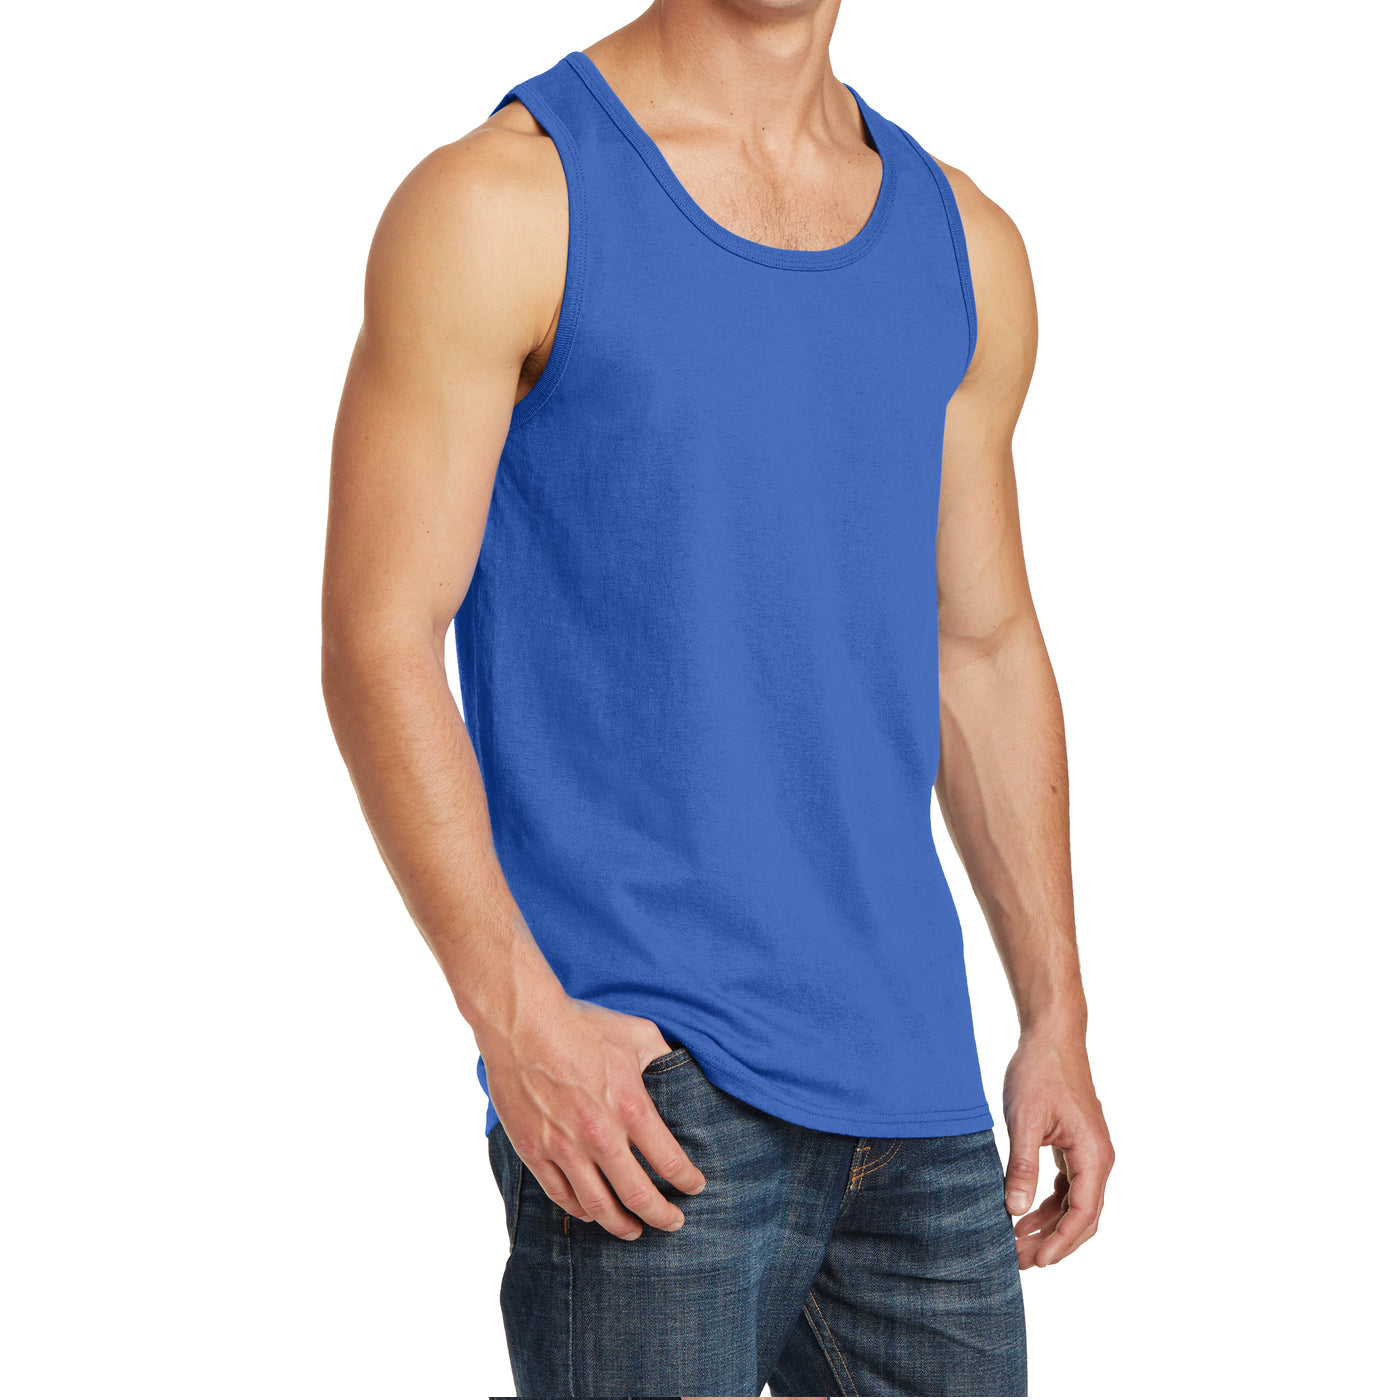 Men's Core Cotton Tank Top - Royal - Side